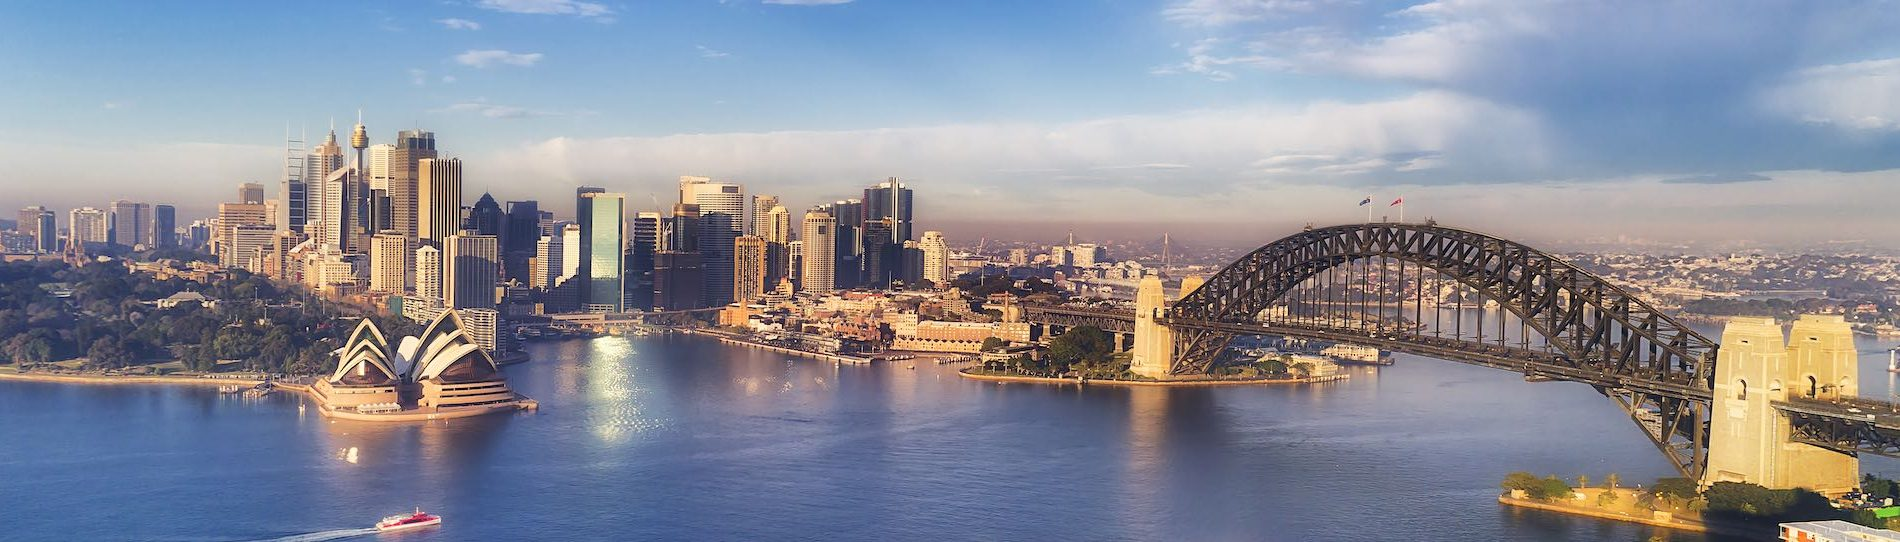 aerial view of sydney city